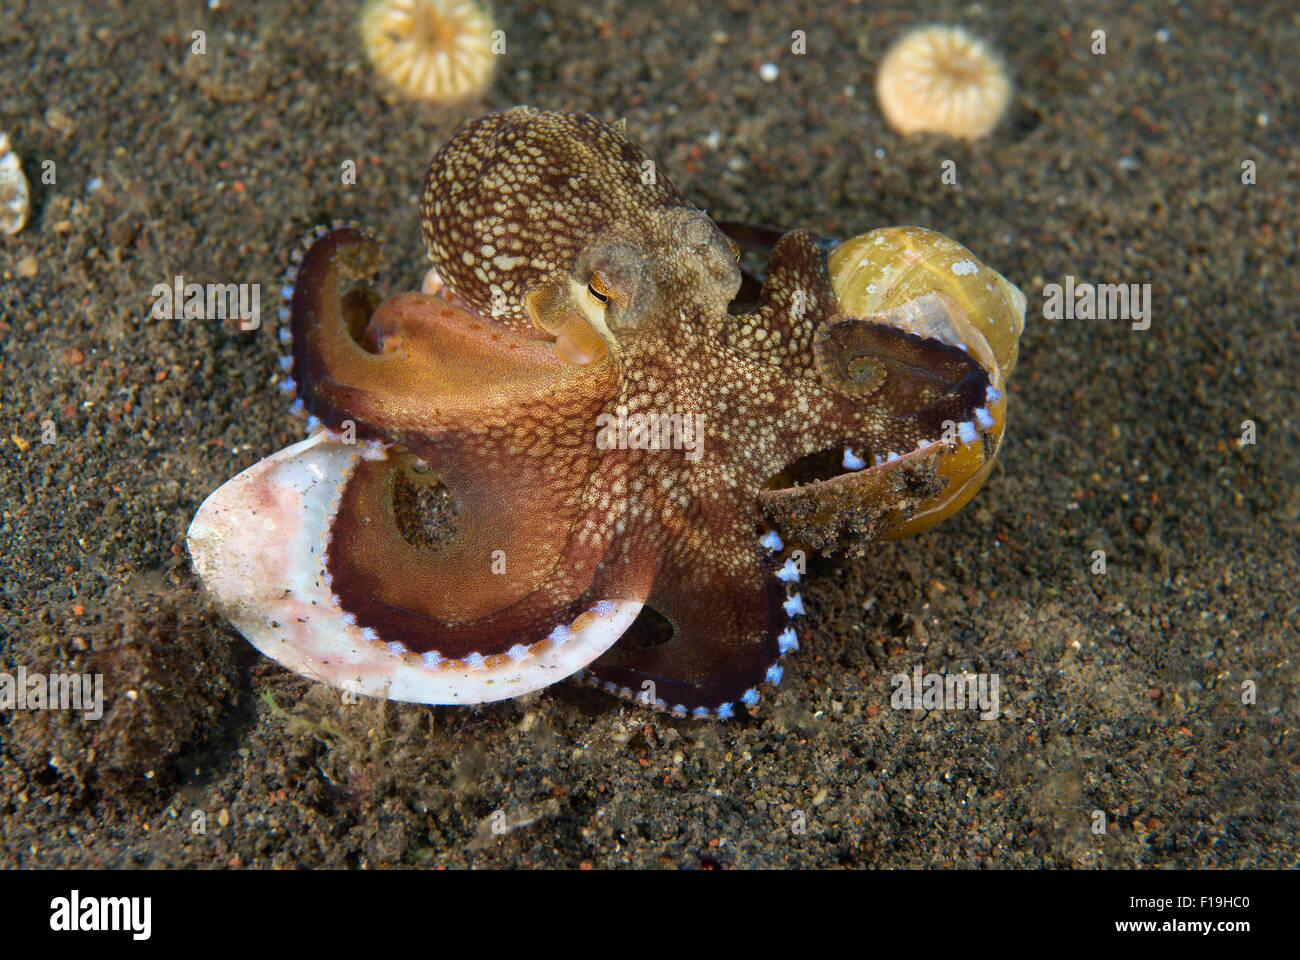 px8650-D. A juvenile Veined Octopus (Amphioctopus marginatus) walking along carrying empty snail shells under which - Stock Image